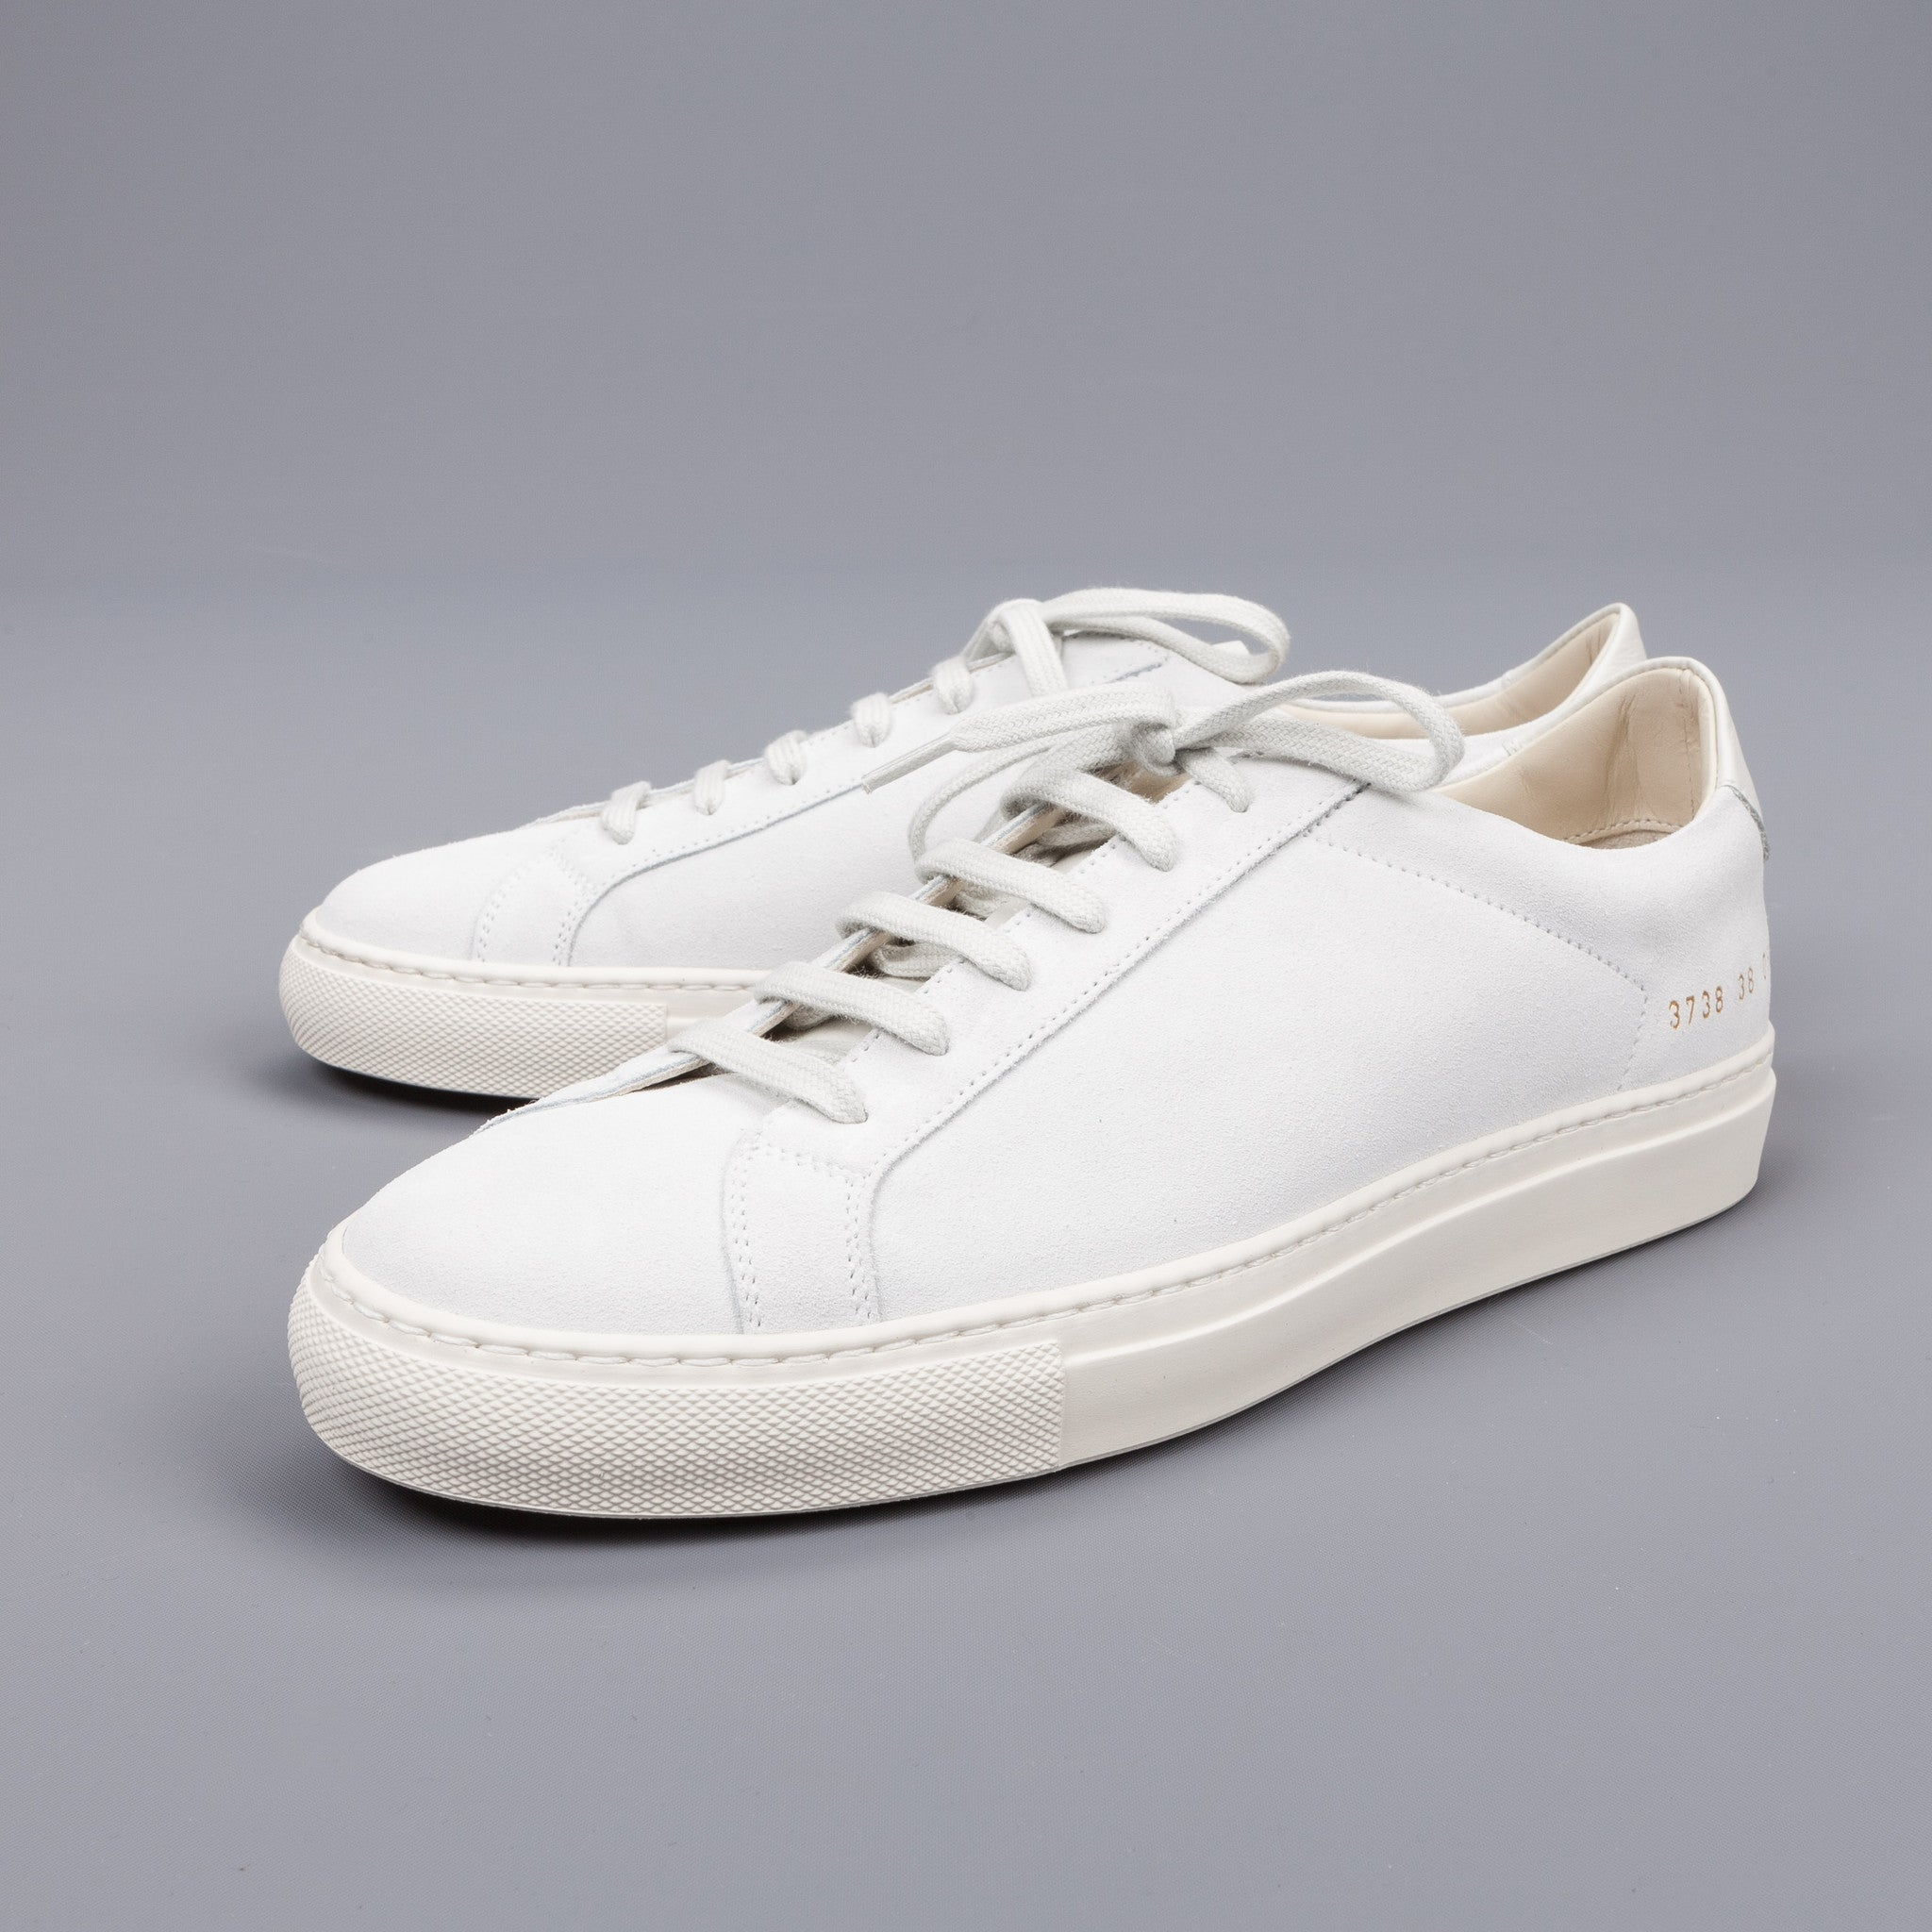 re stocked woman by common projects achilles premium low in suede whi frans boone store. Black Bedroom Furniture Sets. Home Design Ideas